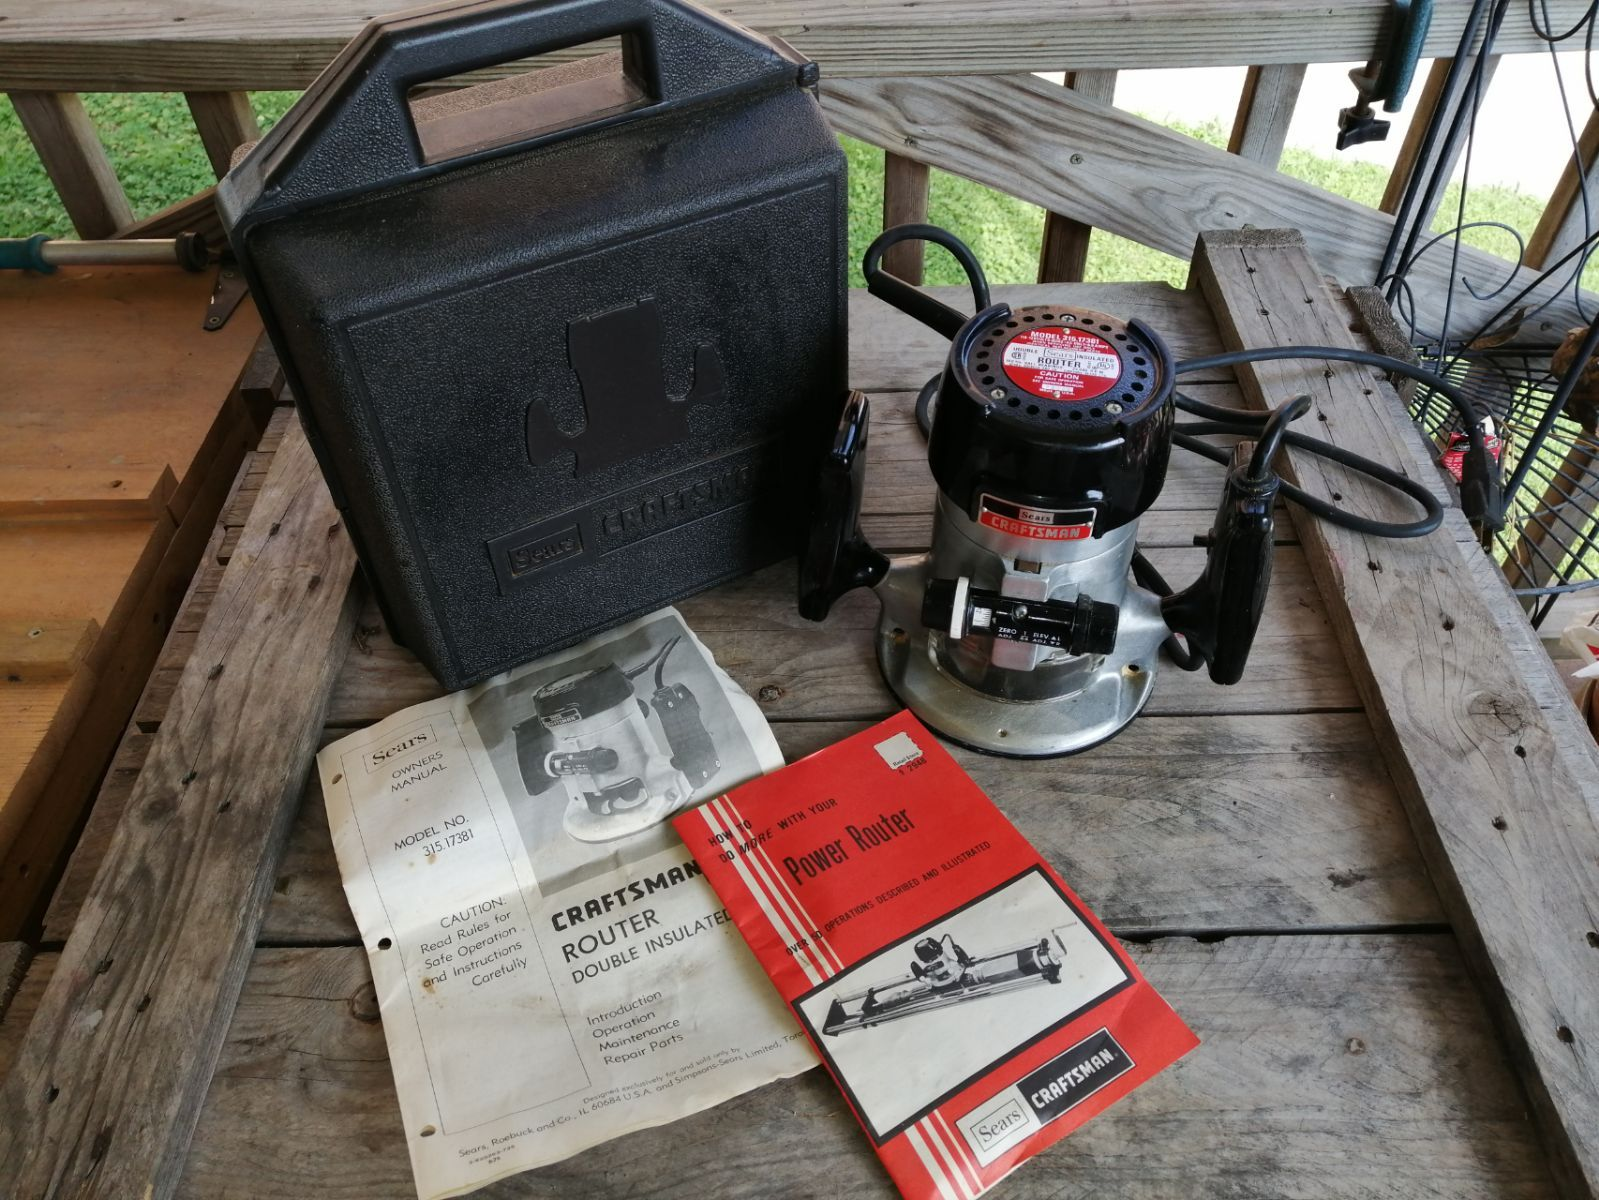 Craftsman Double Insulated Router 315 17381 This Was My Grandfather S Router So I Don T Know Much About It I Know It S In Goo Craftsman Tools Insulater Router